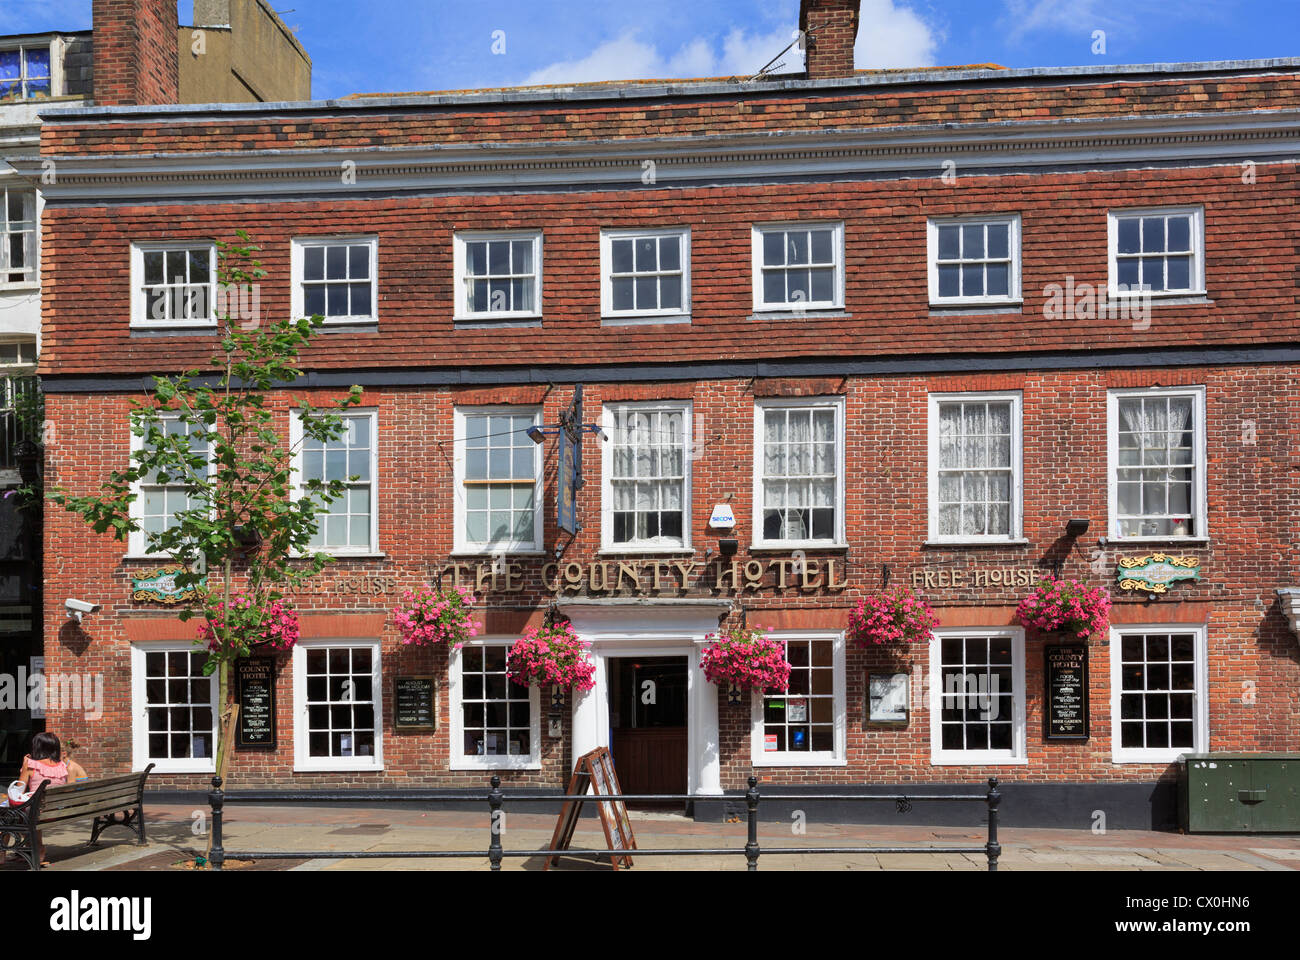 Wetherspoon's free house pub in former County Hotel building in the town centre of Ashford, Kent, England, UK, - Stock Image